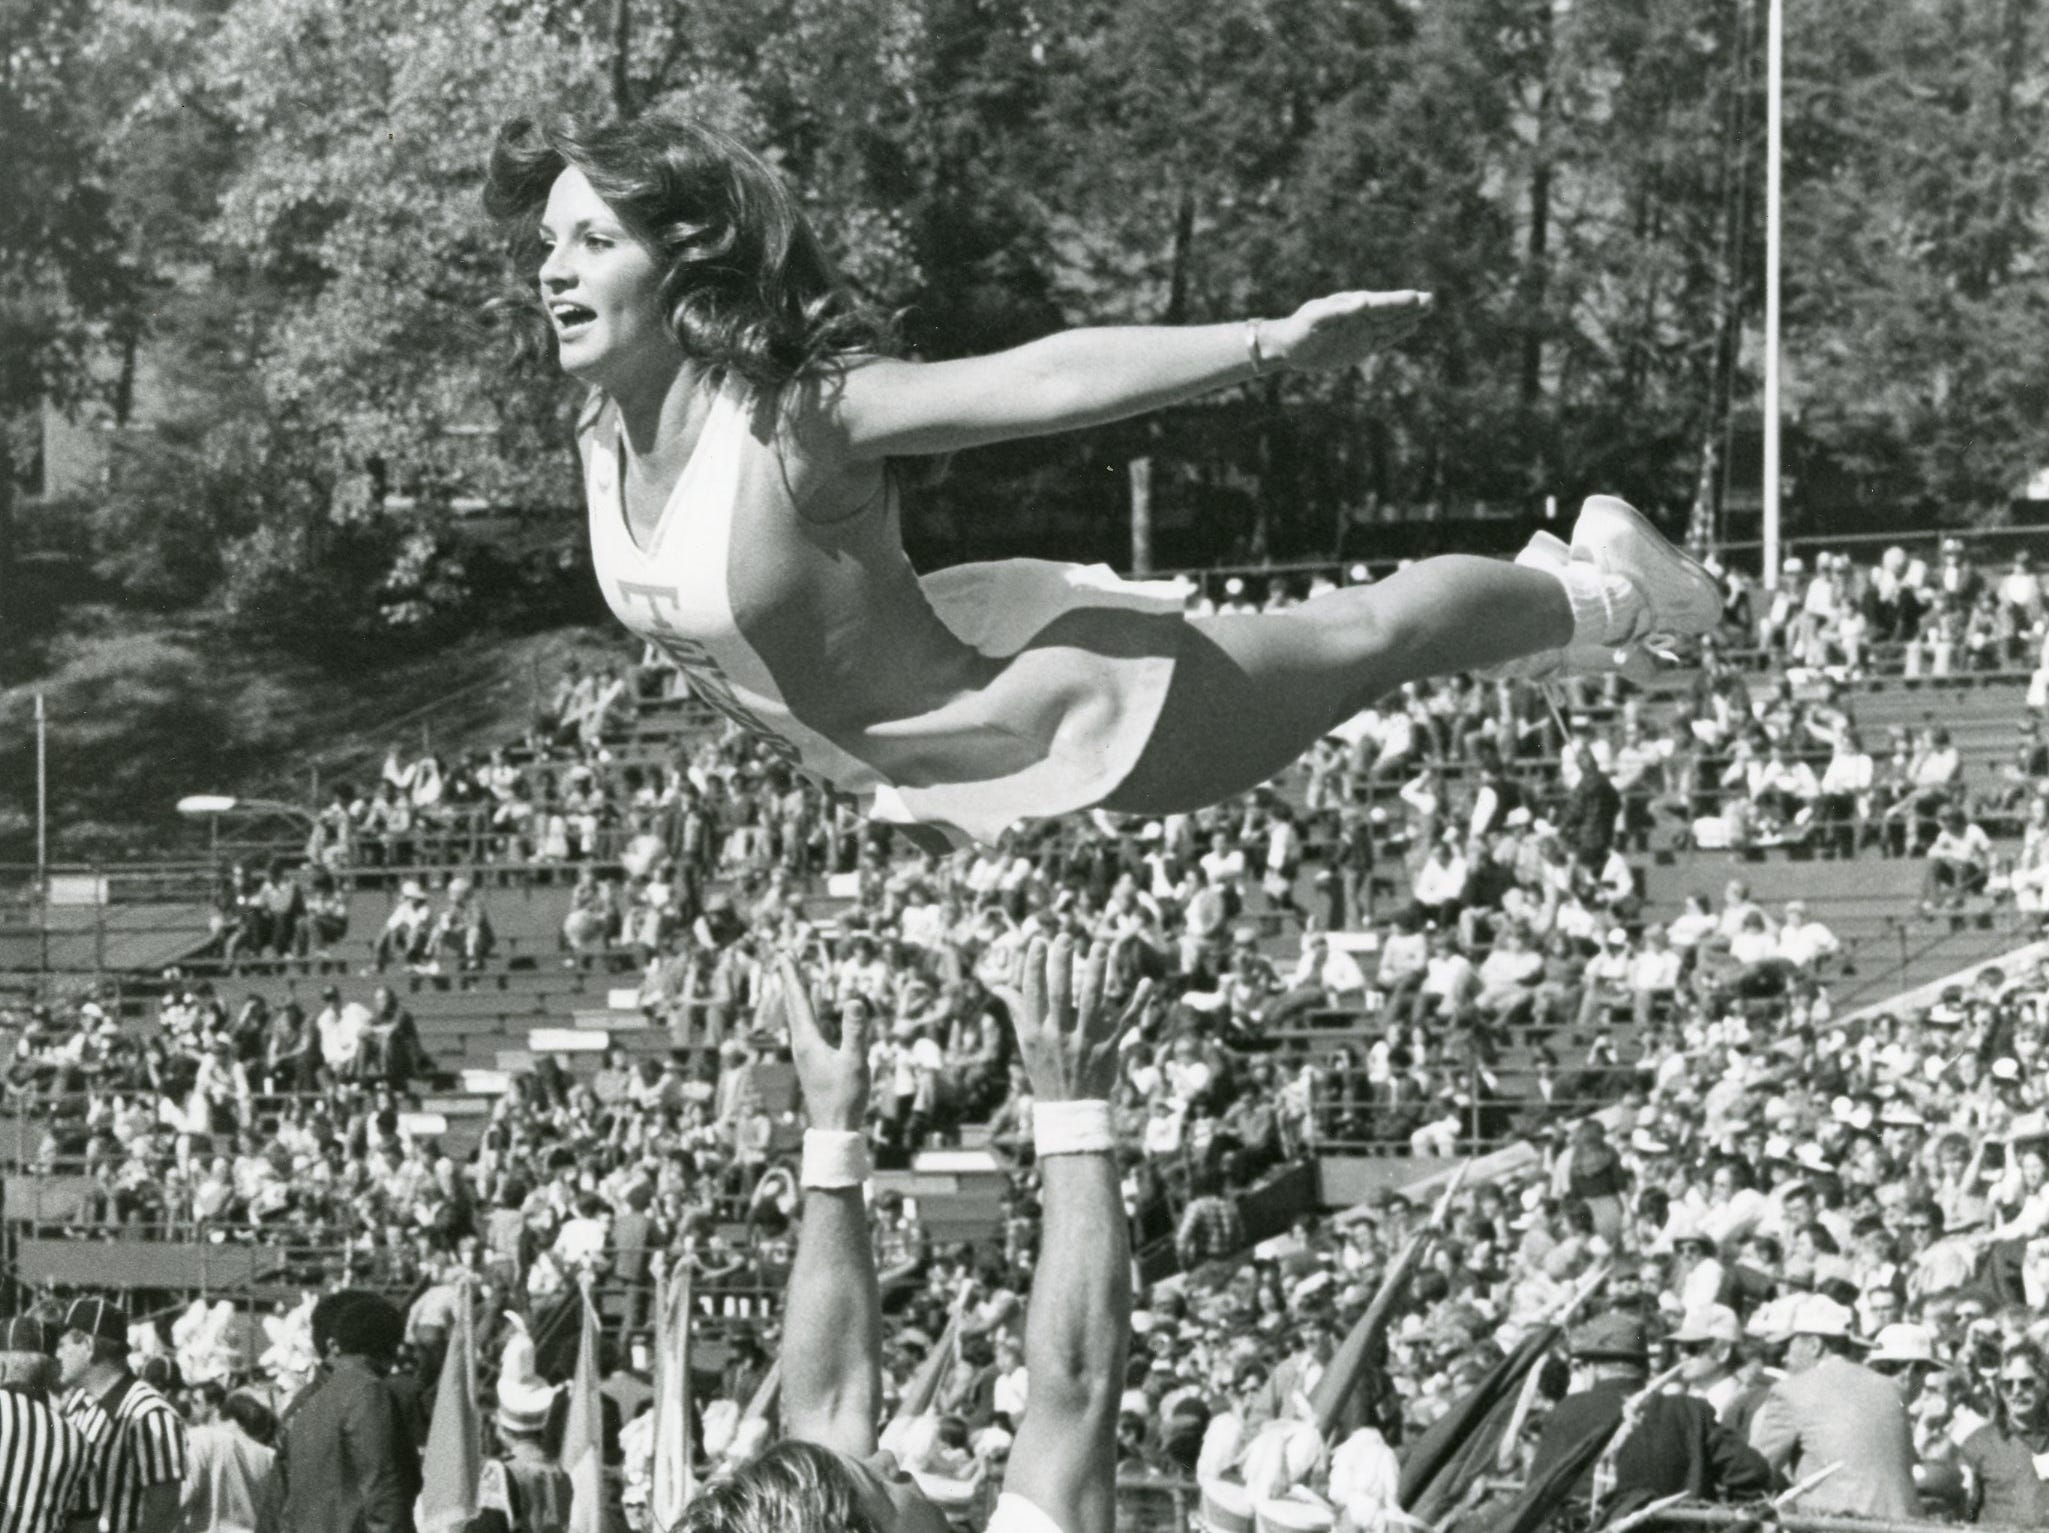 UT cheerleader Cindy Greene flies high, November, 1975.